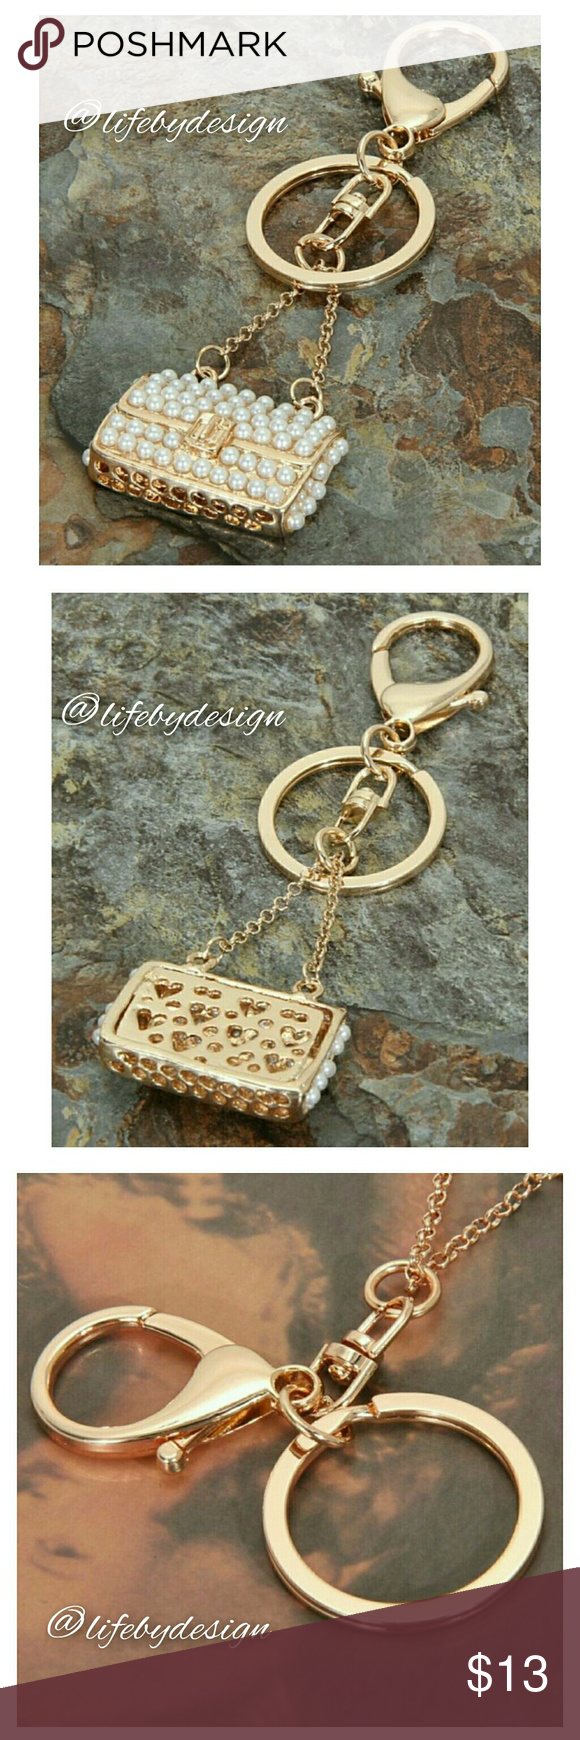 Gold Tone & Pearly Rhinestone Clutch Bag Keychain Cute as can be with pearly rhinestones studding this little clutch that eeven has a little latch opener. (Does not actually open, but cute) Hearts scatter the back of the clutch reminding you of the loved on who awaits for you at home...or whereever. ;)  Alloy metal and rhinestones. Life by Design  Accessories Key & Card Holders